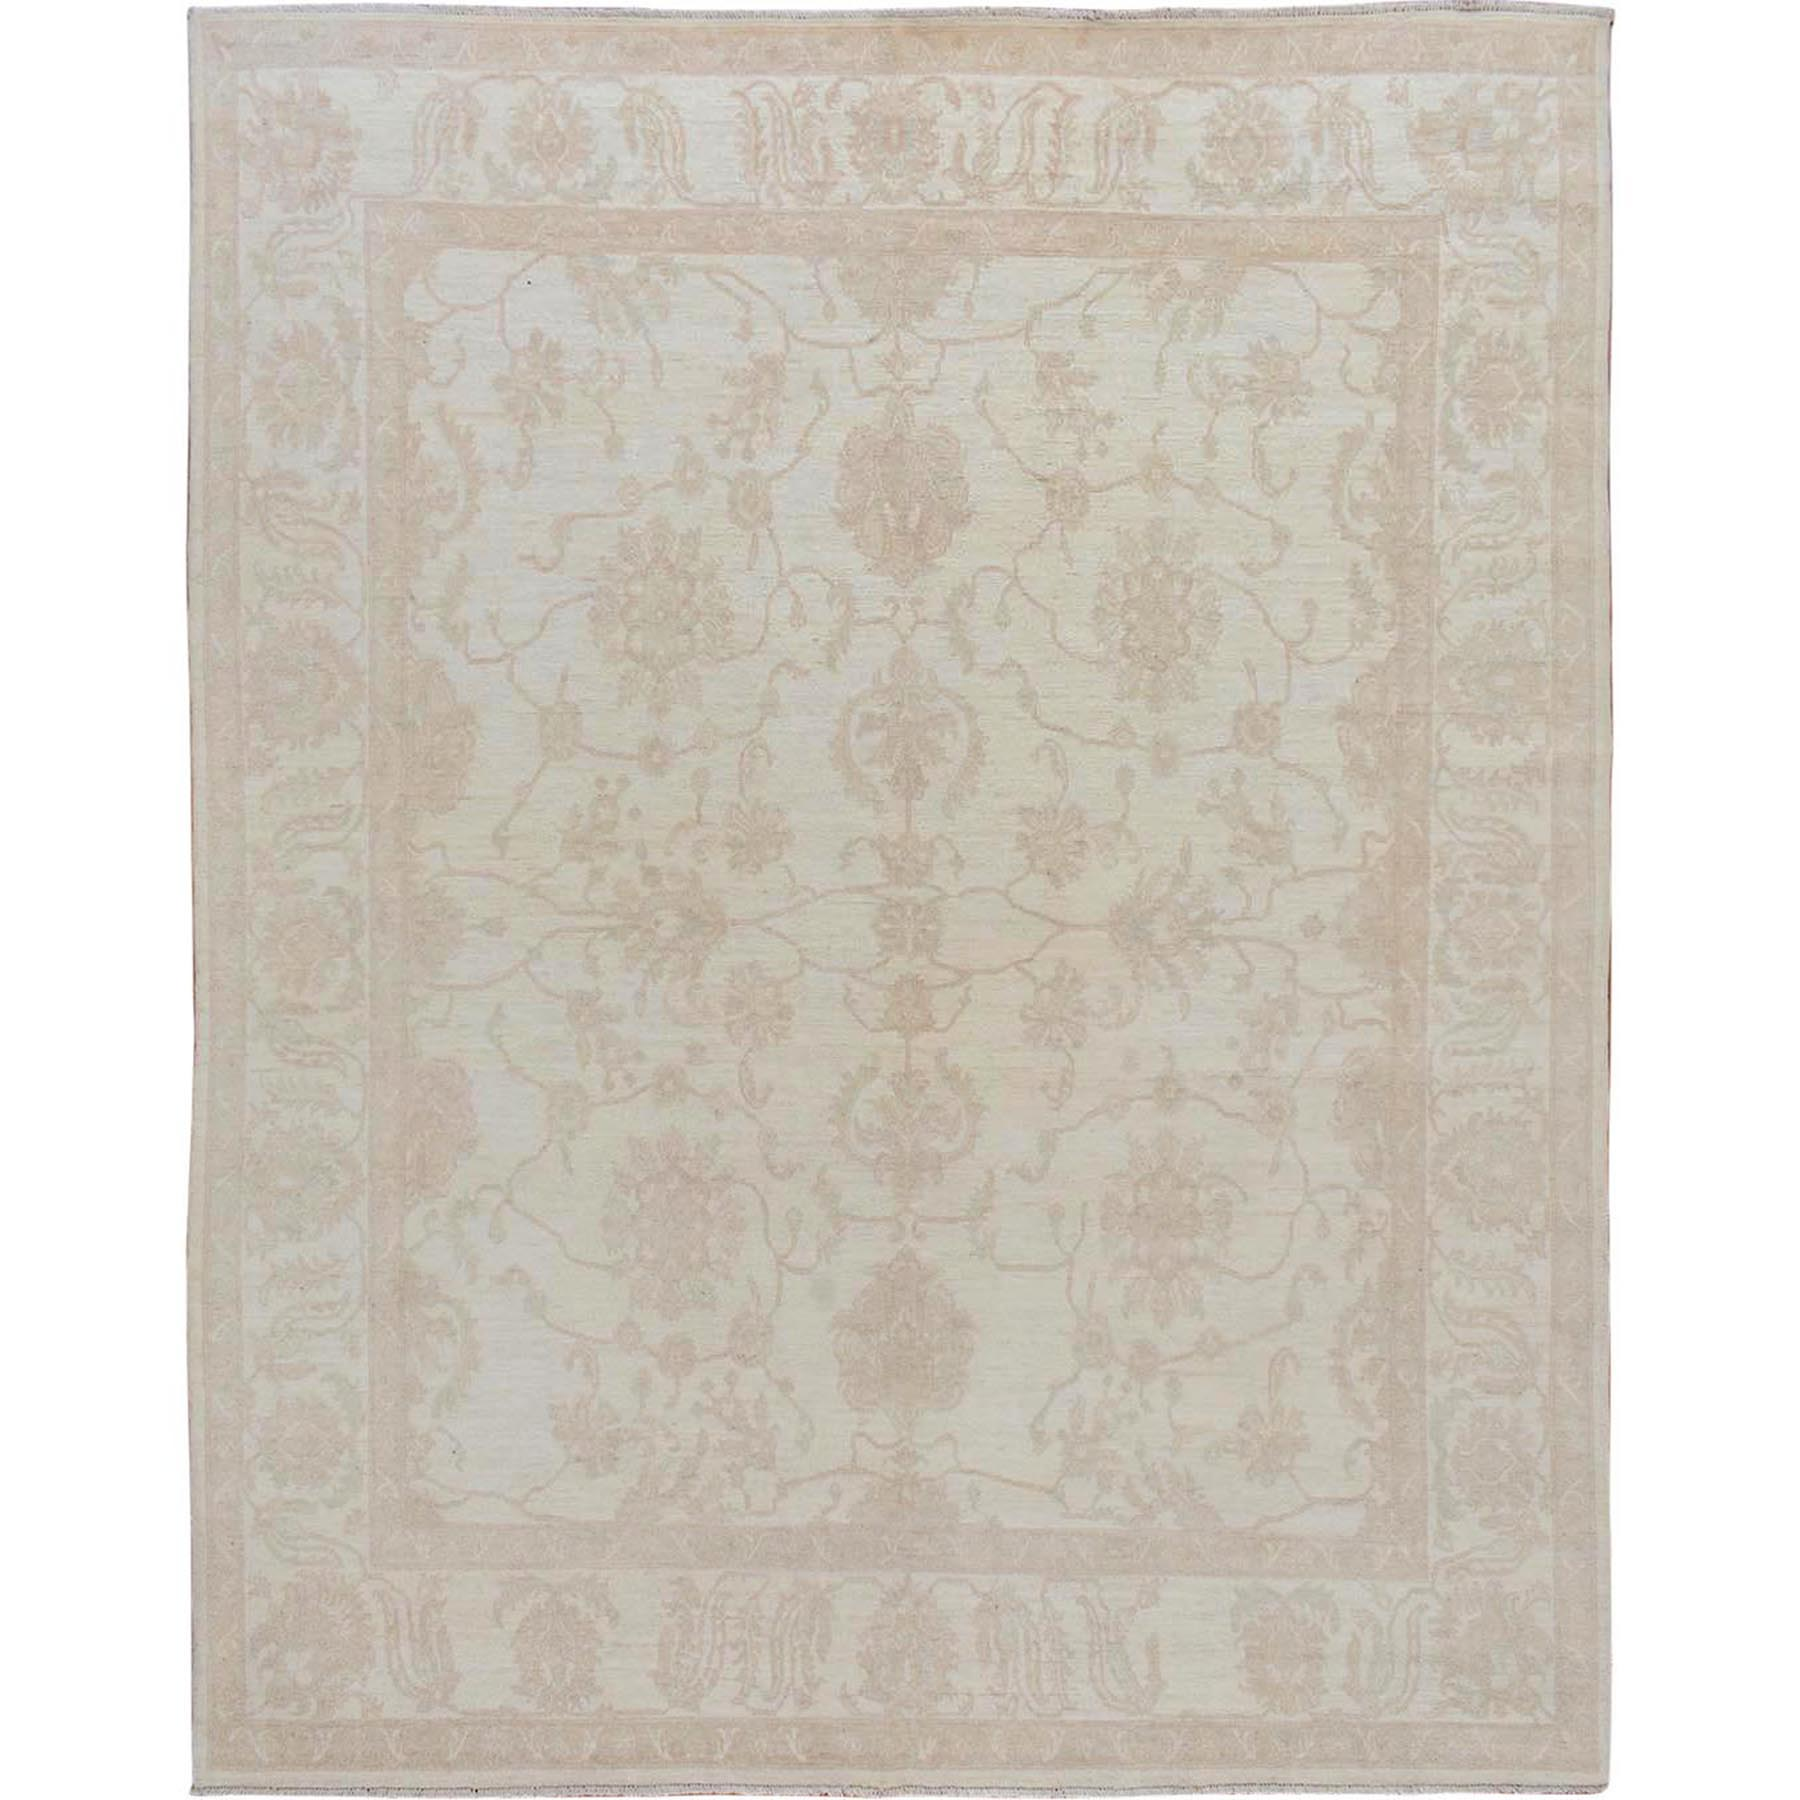 "8'x9'6"" Ivory White Wash Peshawar Ziegler Mahal Pure Wool Hand Knotted Oriental Rug"